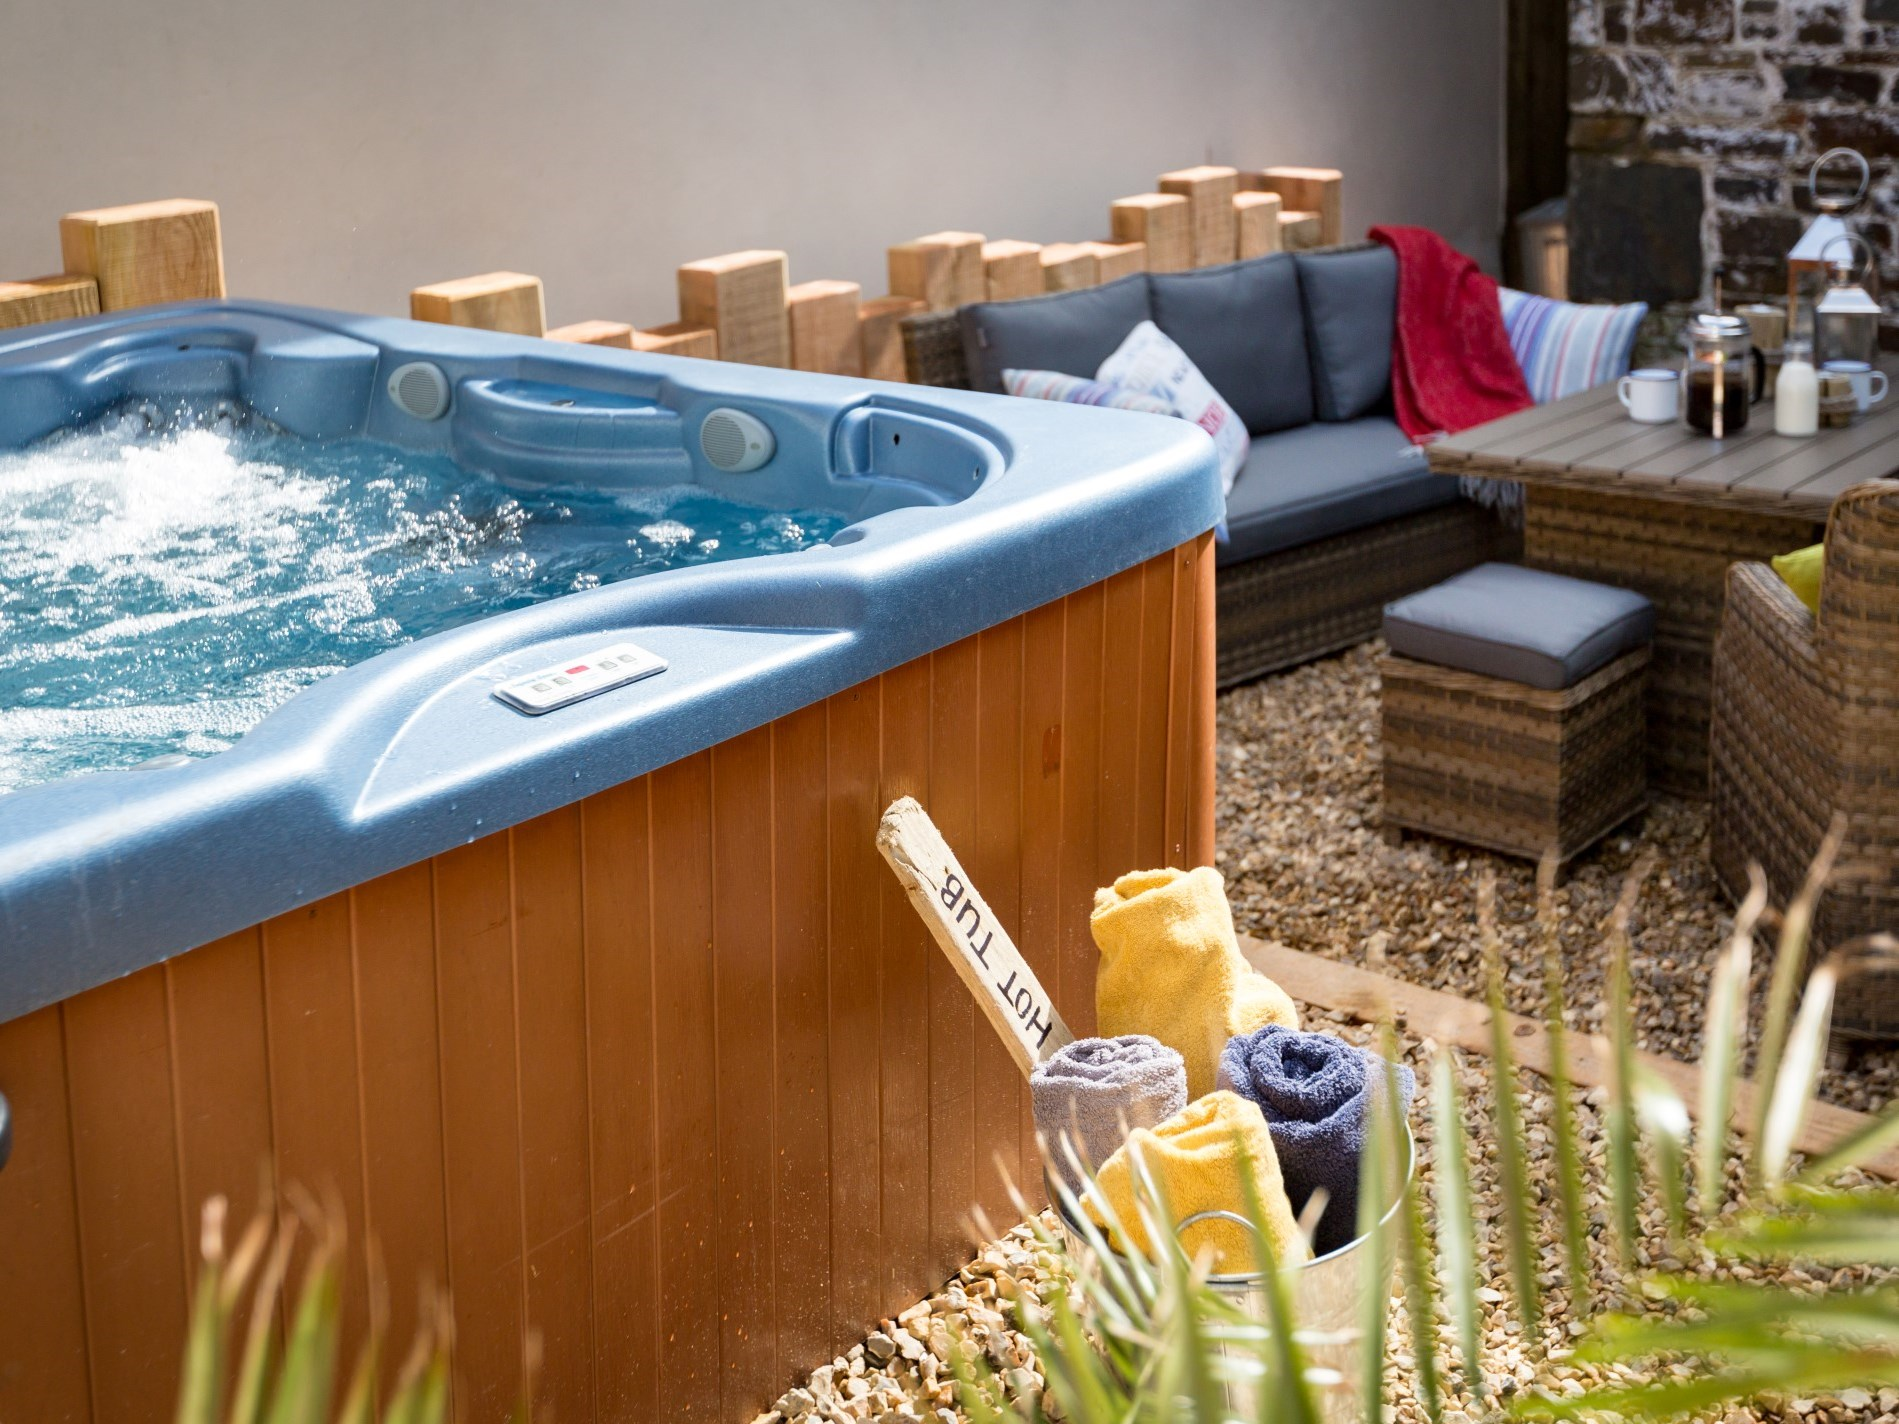 Enjoy a well deserved soak in the hot tub